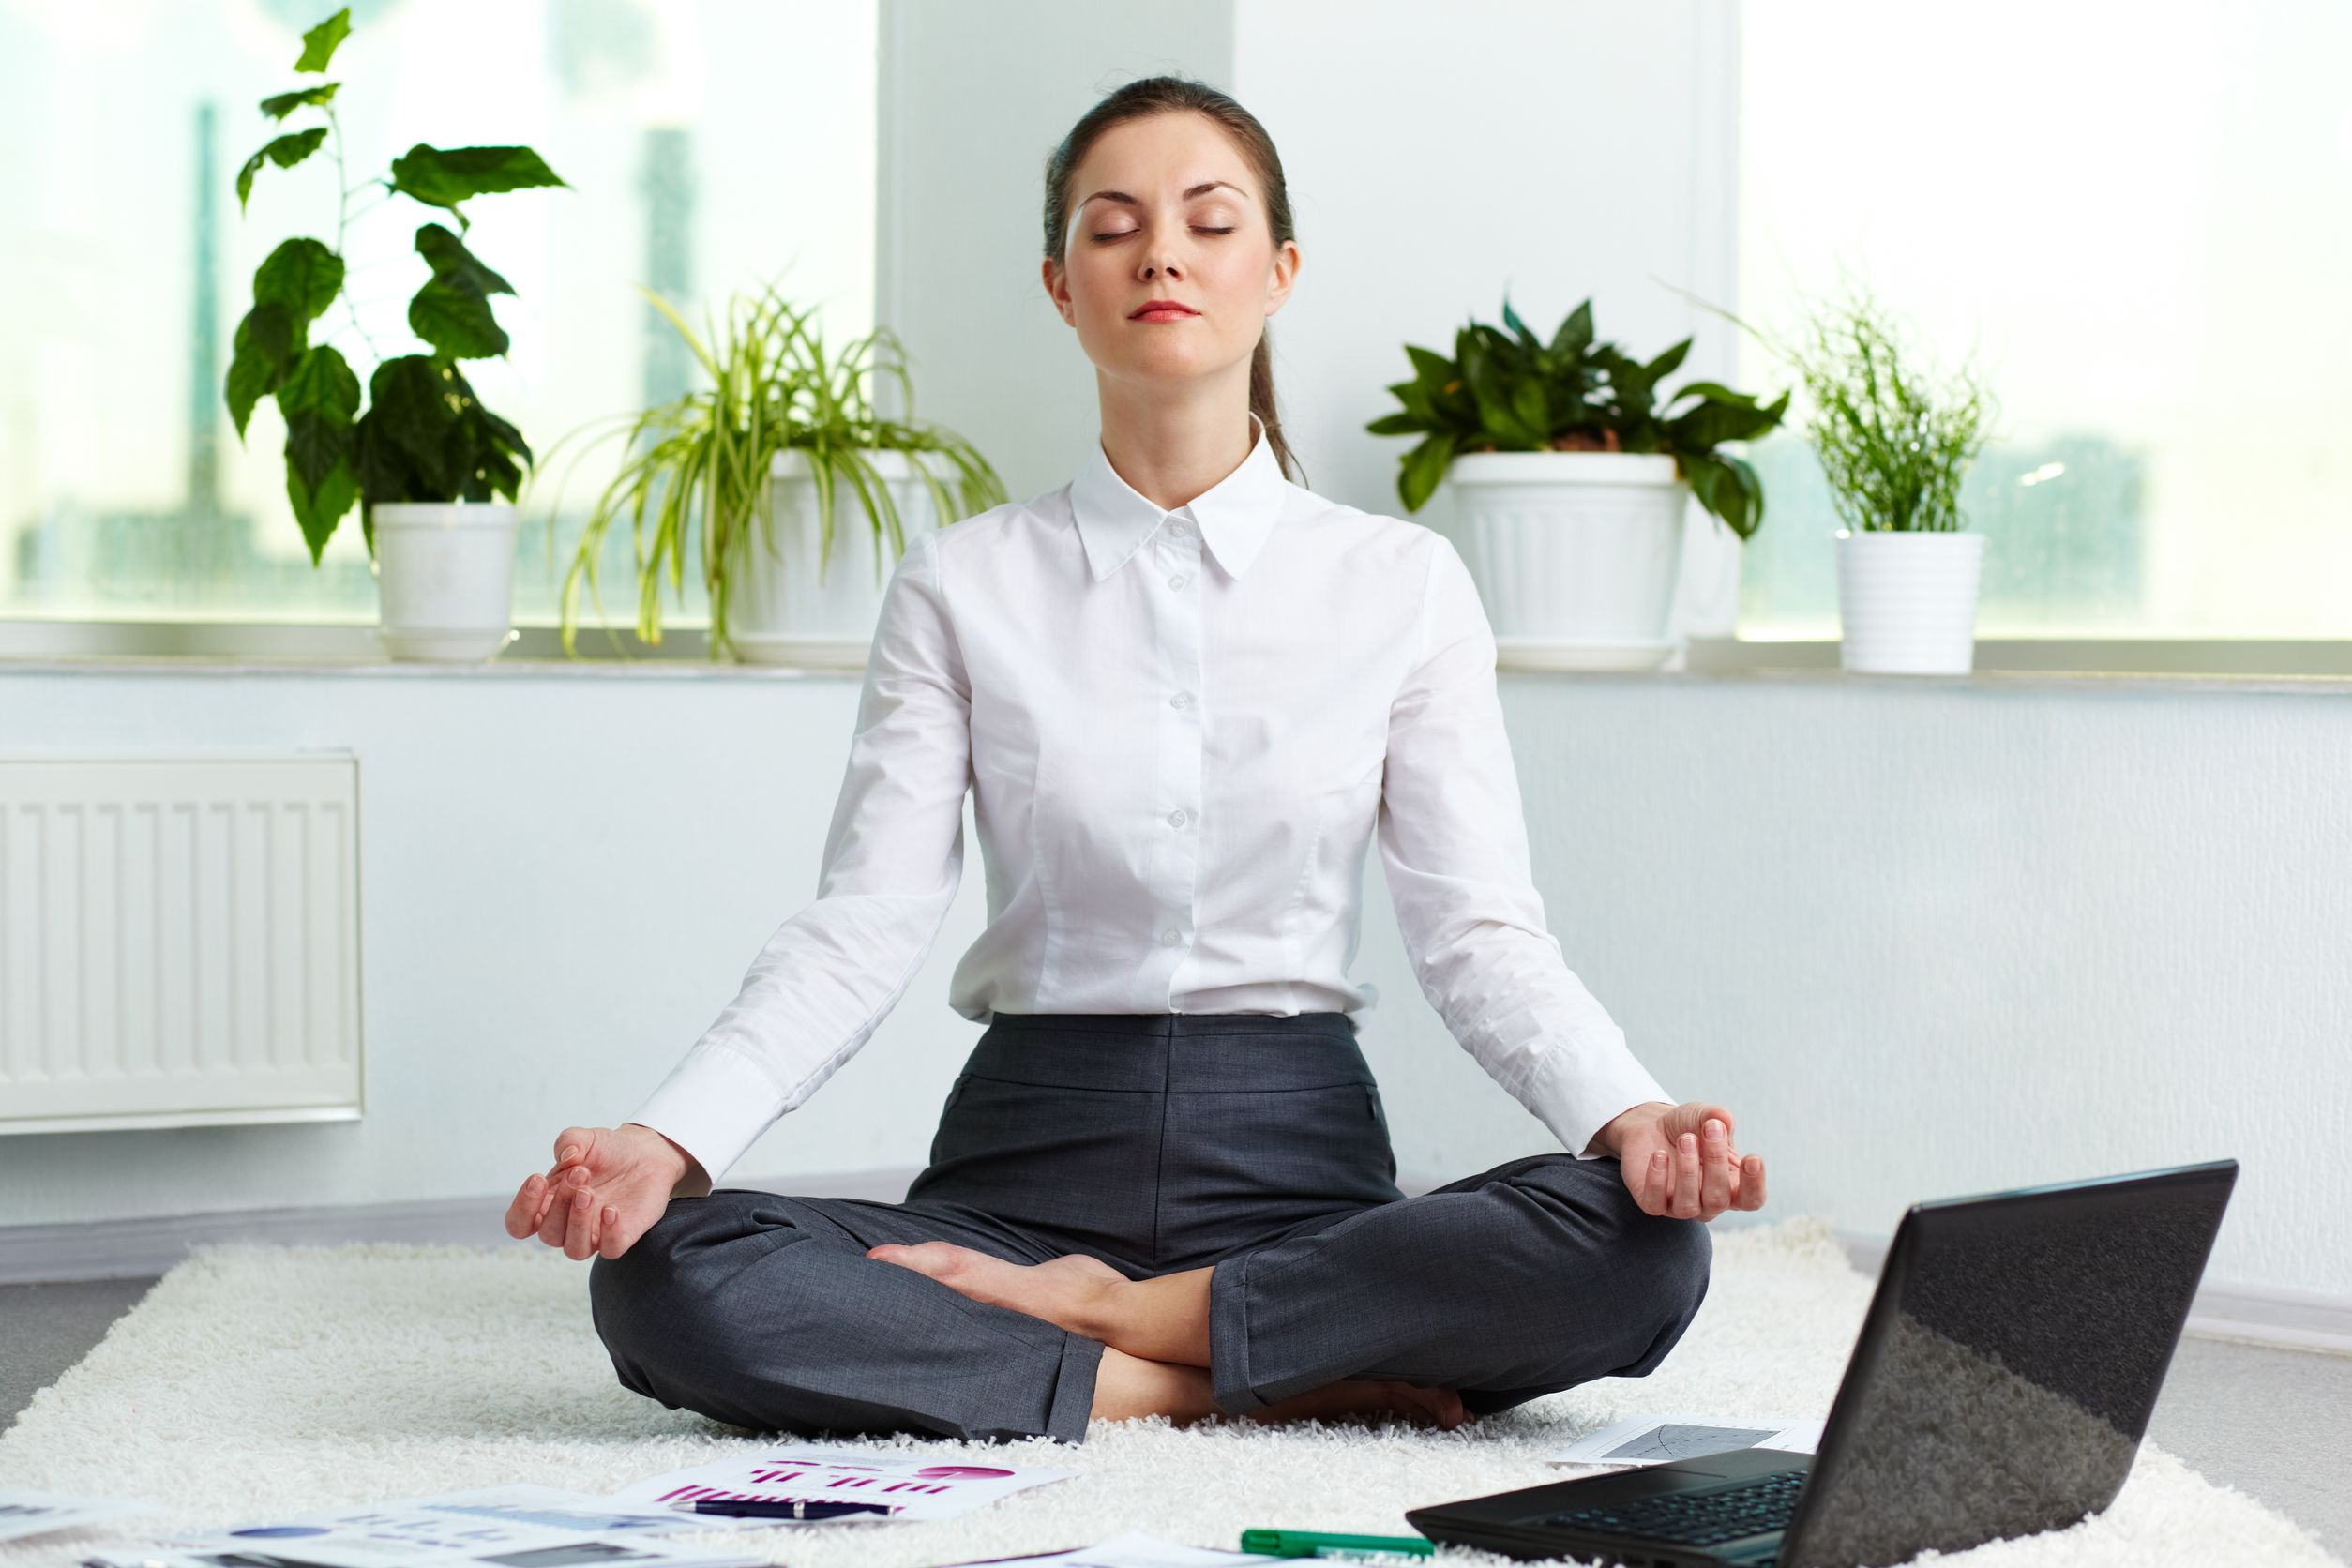 http://hi-tech.ua/wp-content/uploads/2015/05/Office-Yoga.jpg